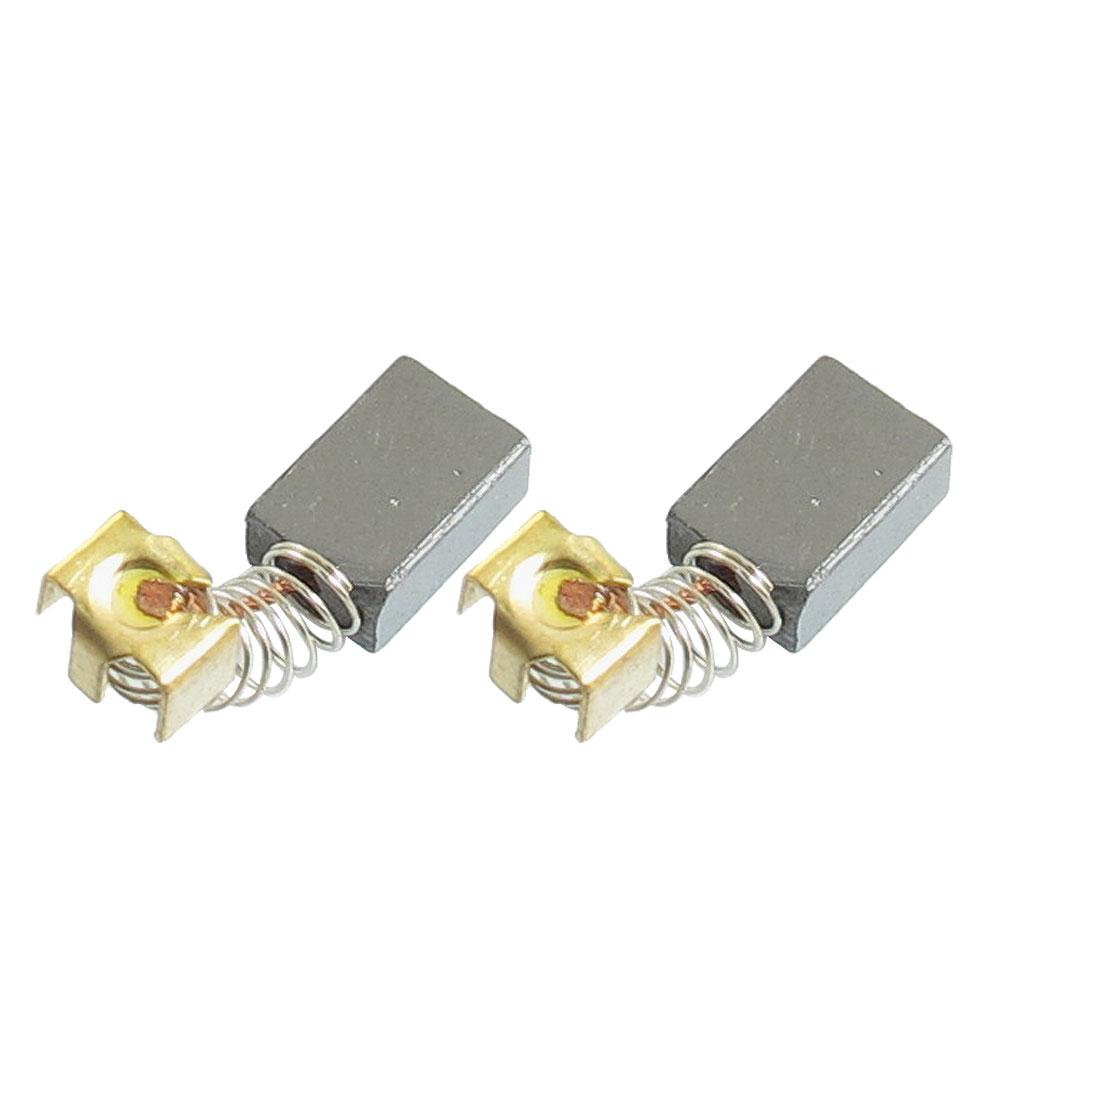 2 Pcs Dongcheng J1Z-FF-10MM 11.5 x 8 x 5mm Electric Motor Carbon Brushes